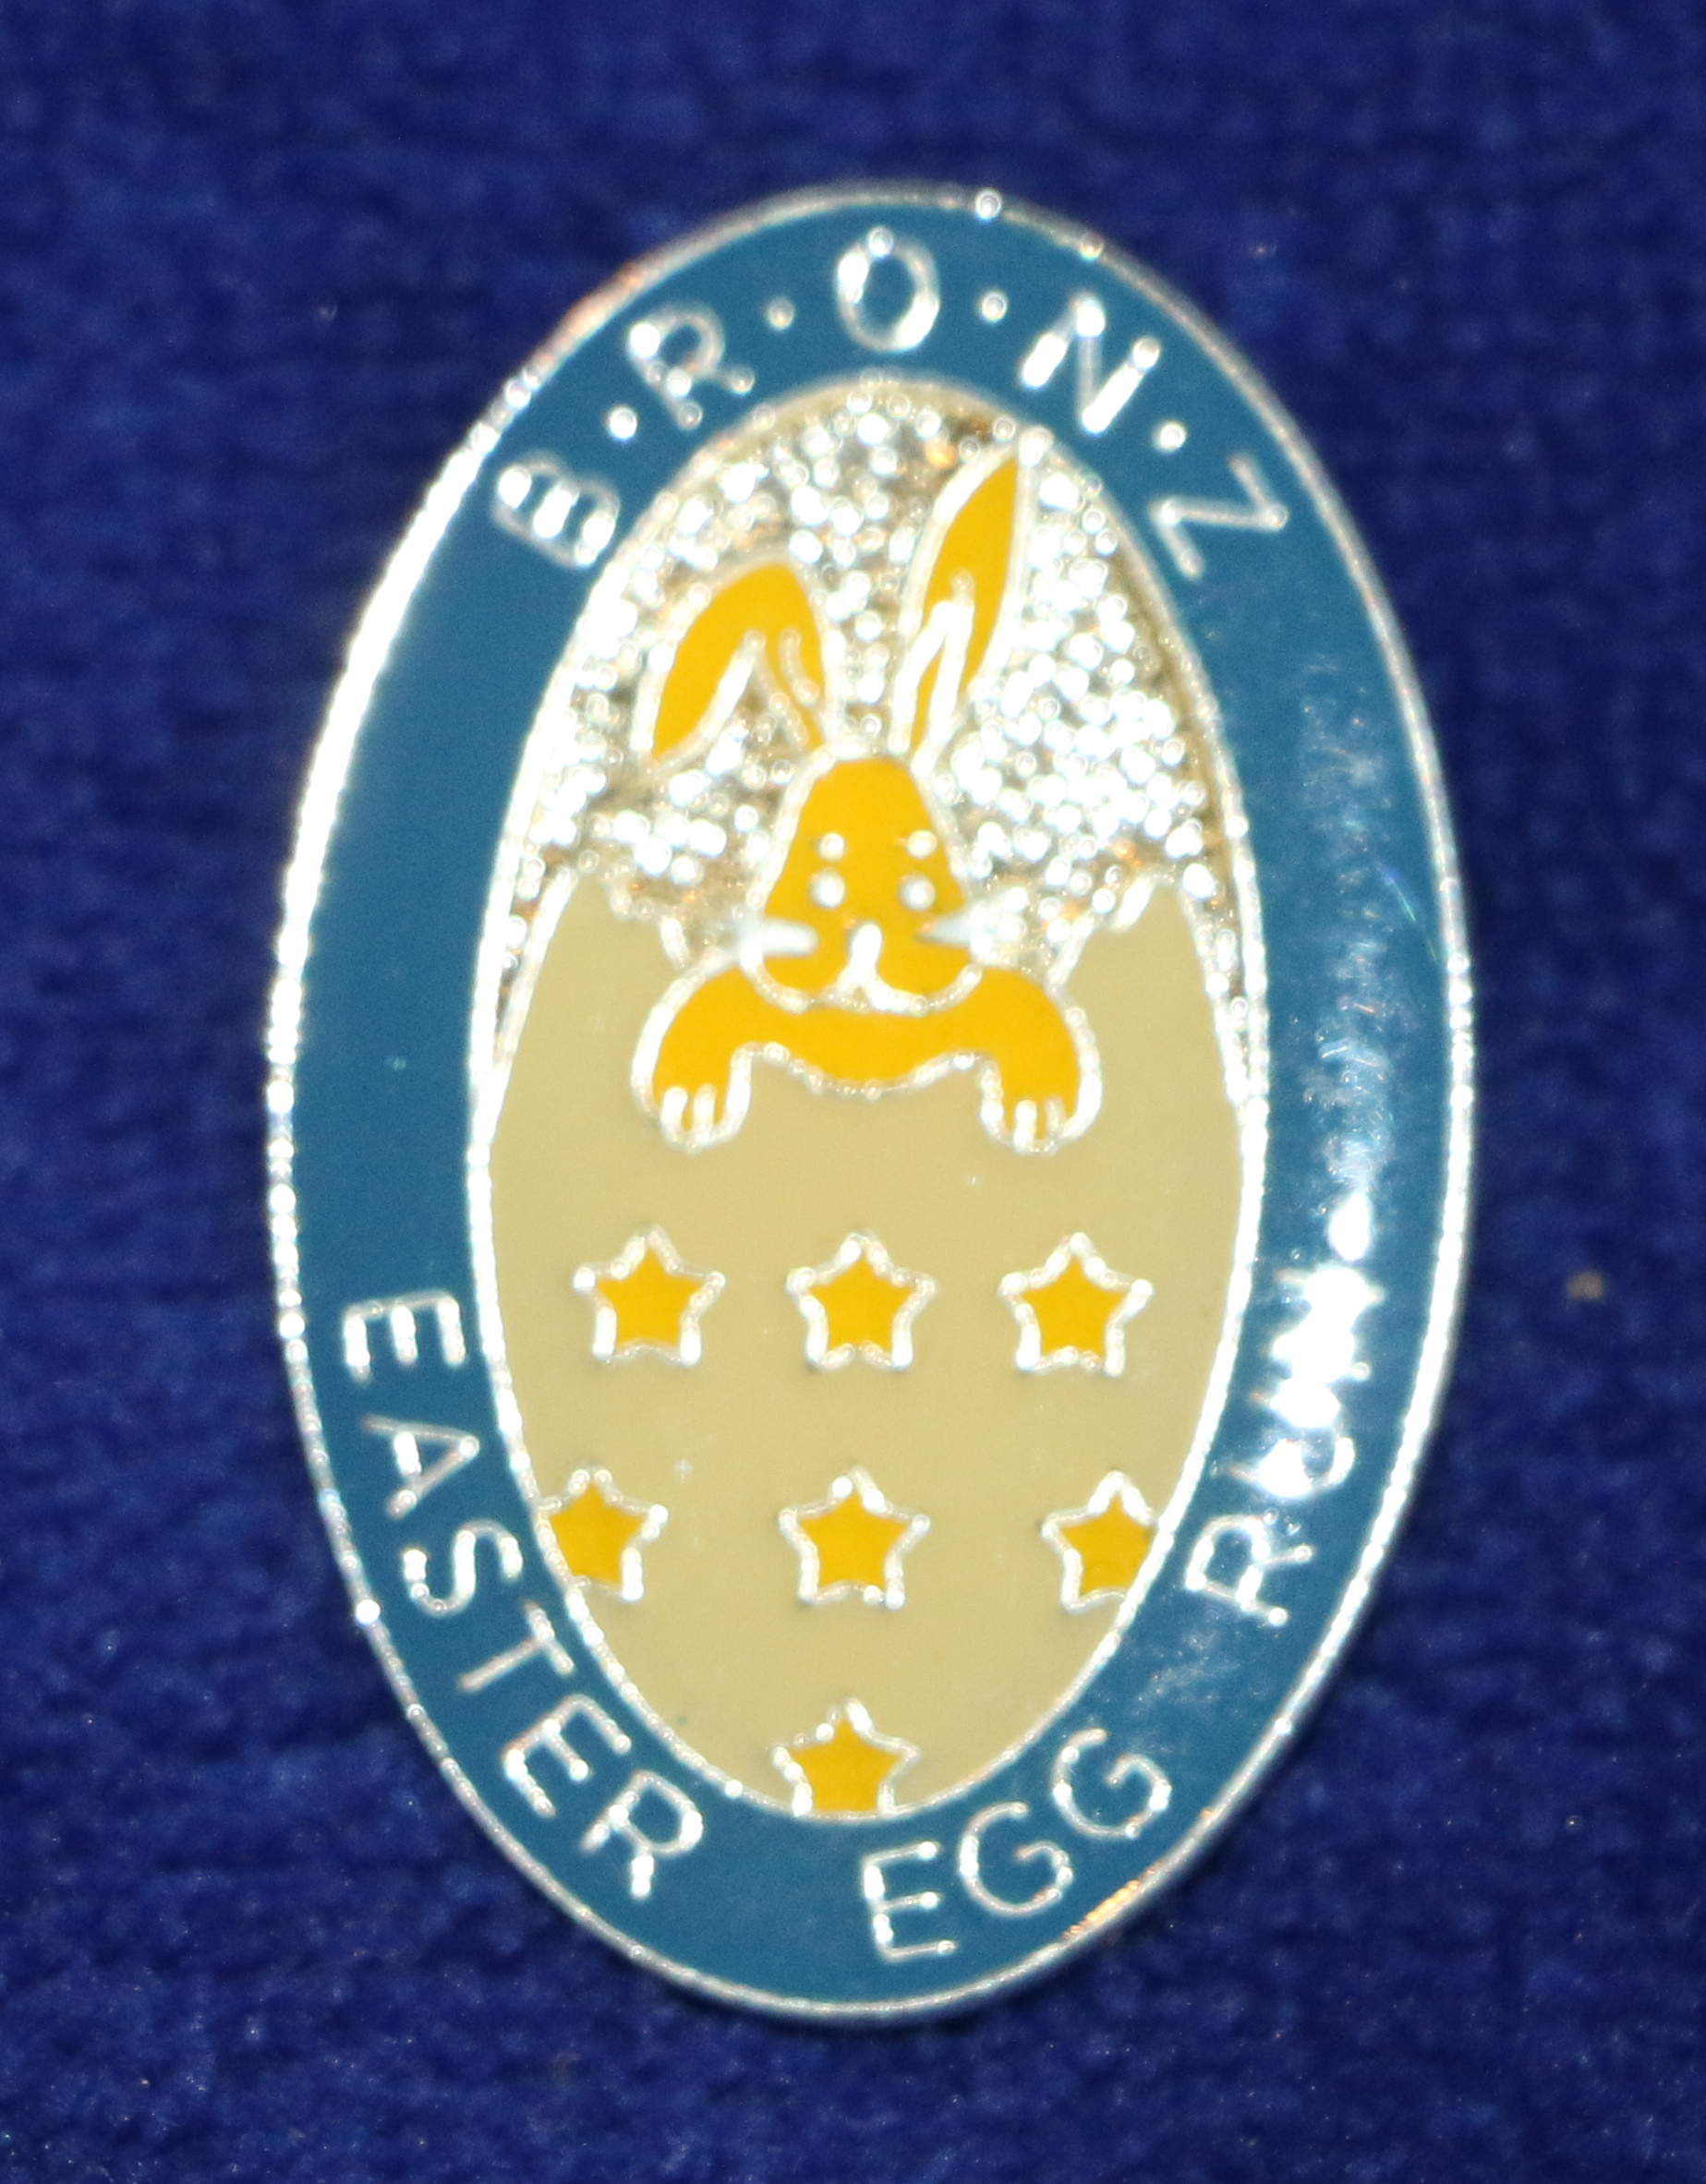 2019 Easter Egg Badge